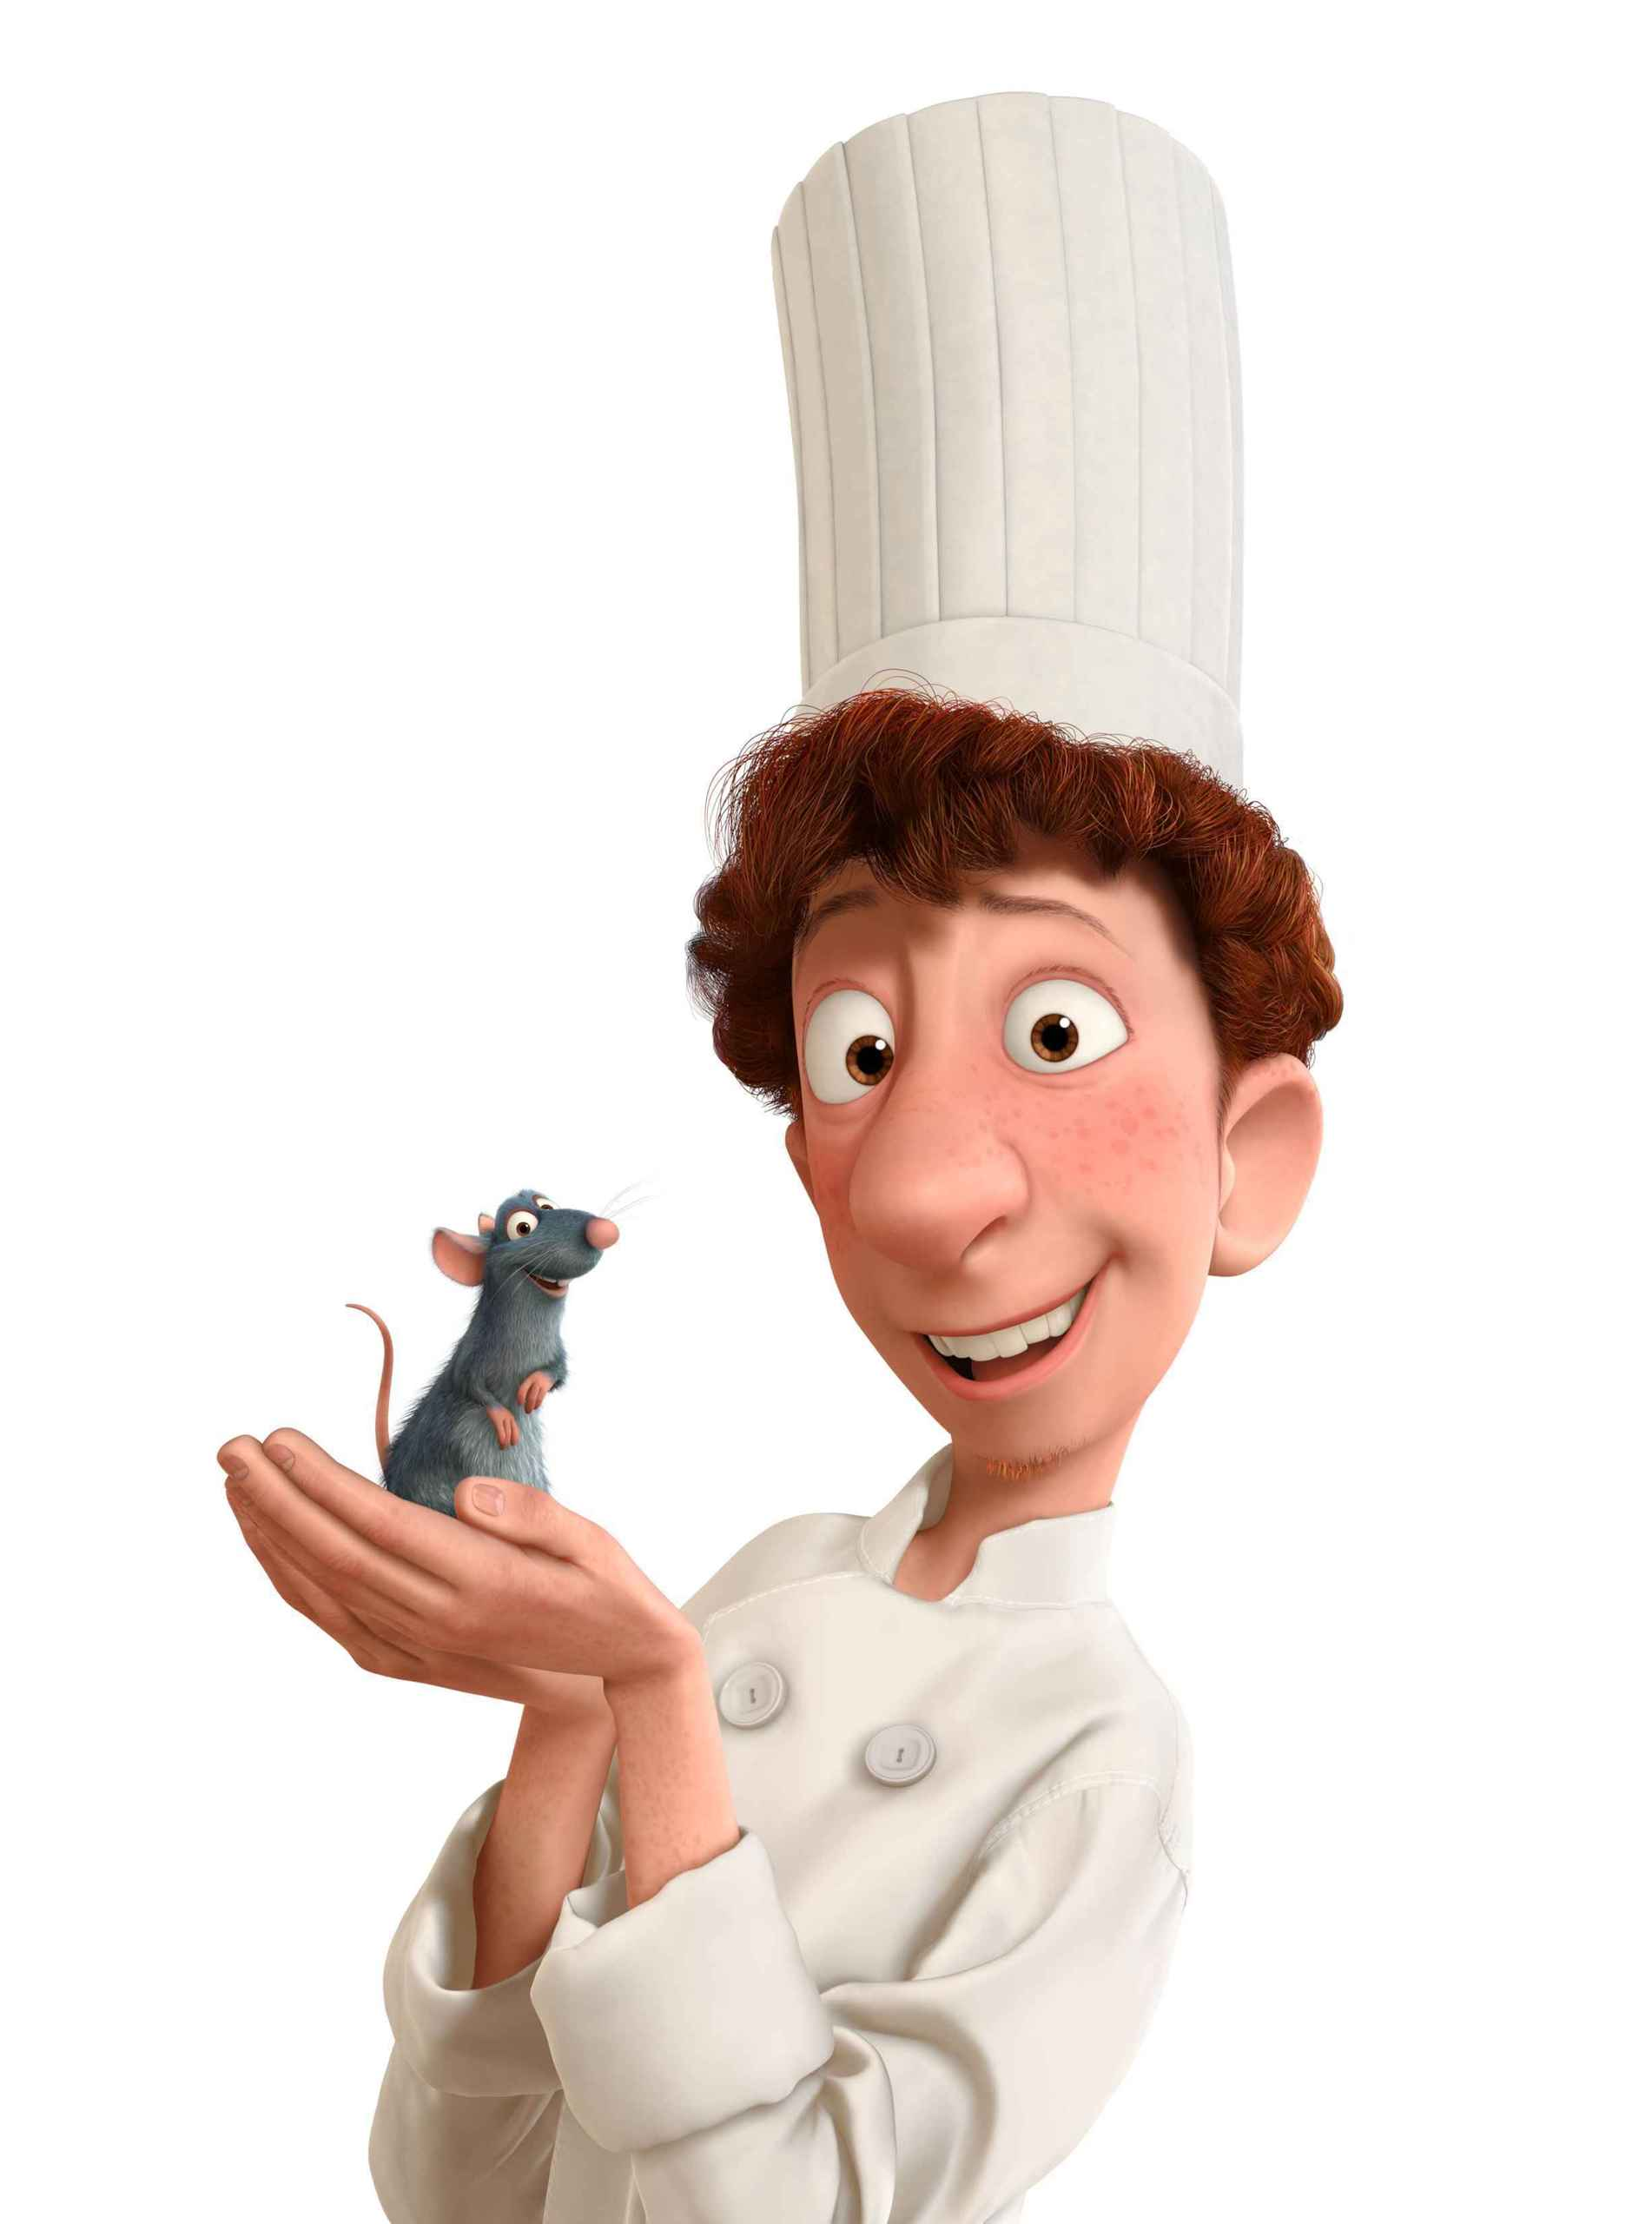 Ratatouille Ratatouille Production Stills